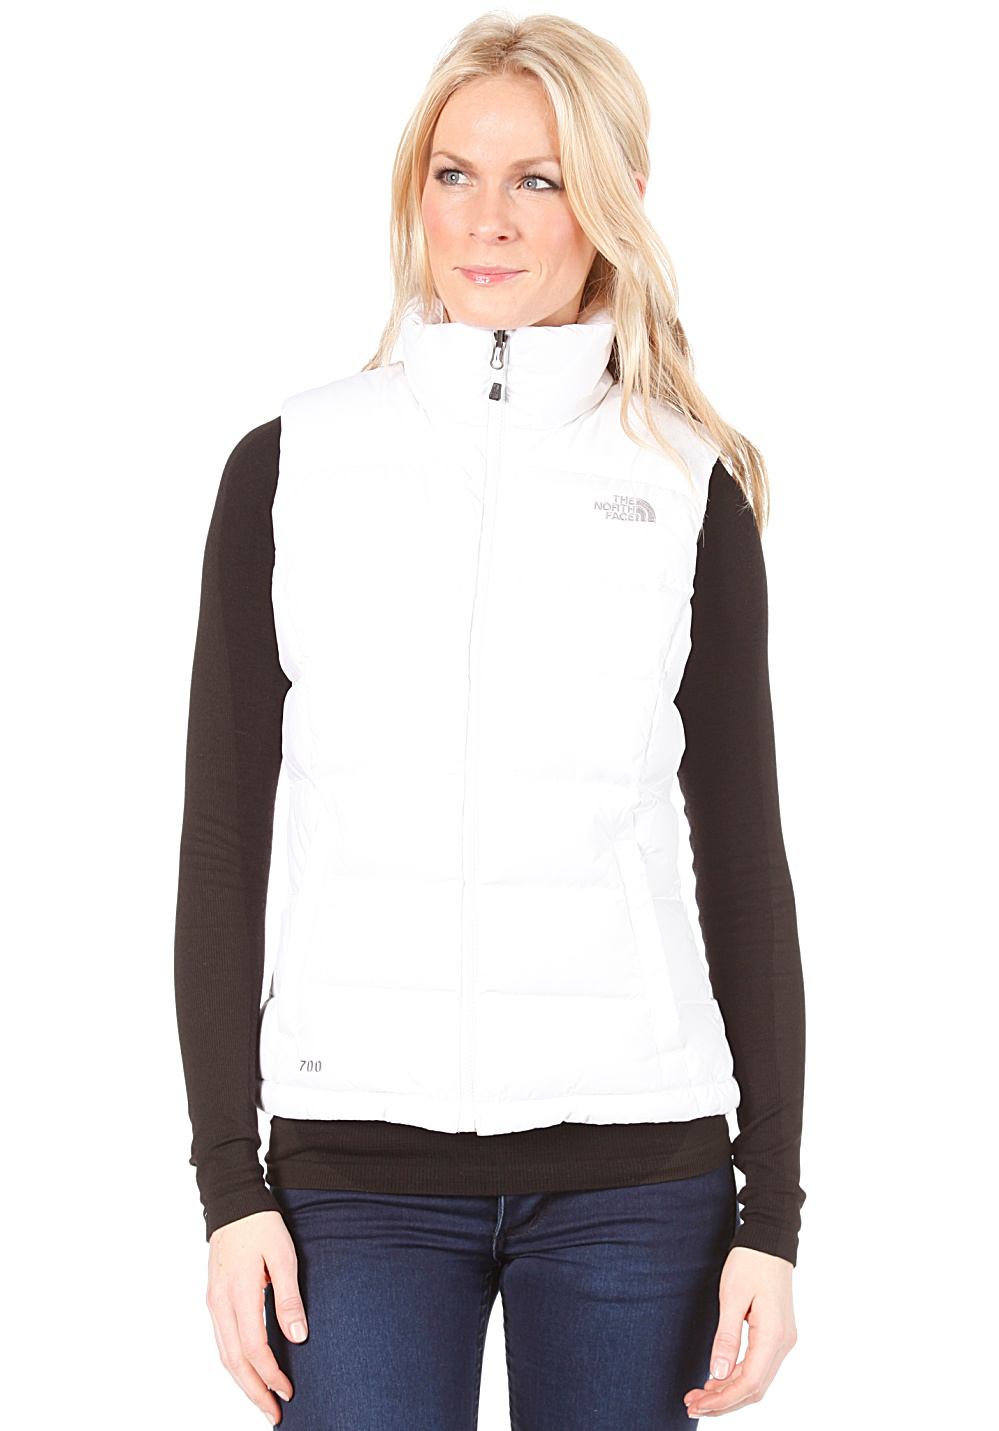 Next. -79%. This product is currently out of stock. THE NORTH FACE. Nuptse  2 Vest - Outdoor Vest for Women ead0405a7